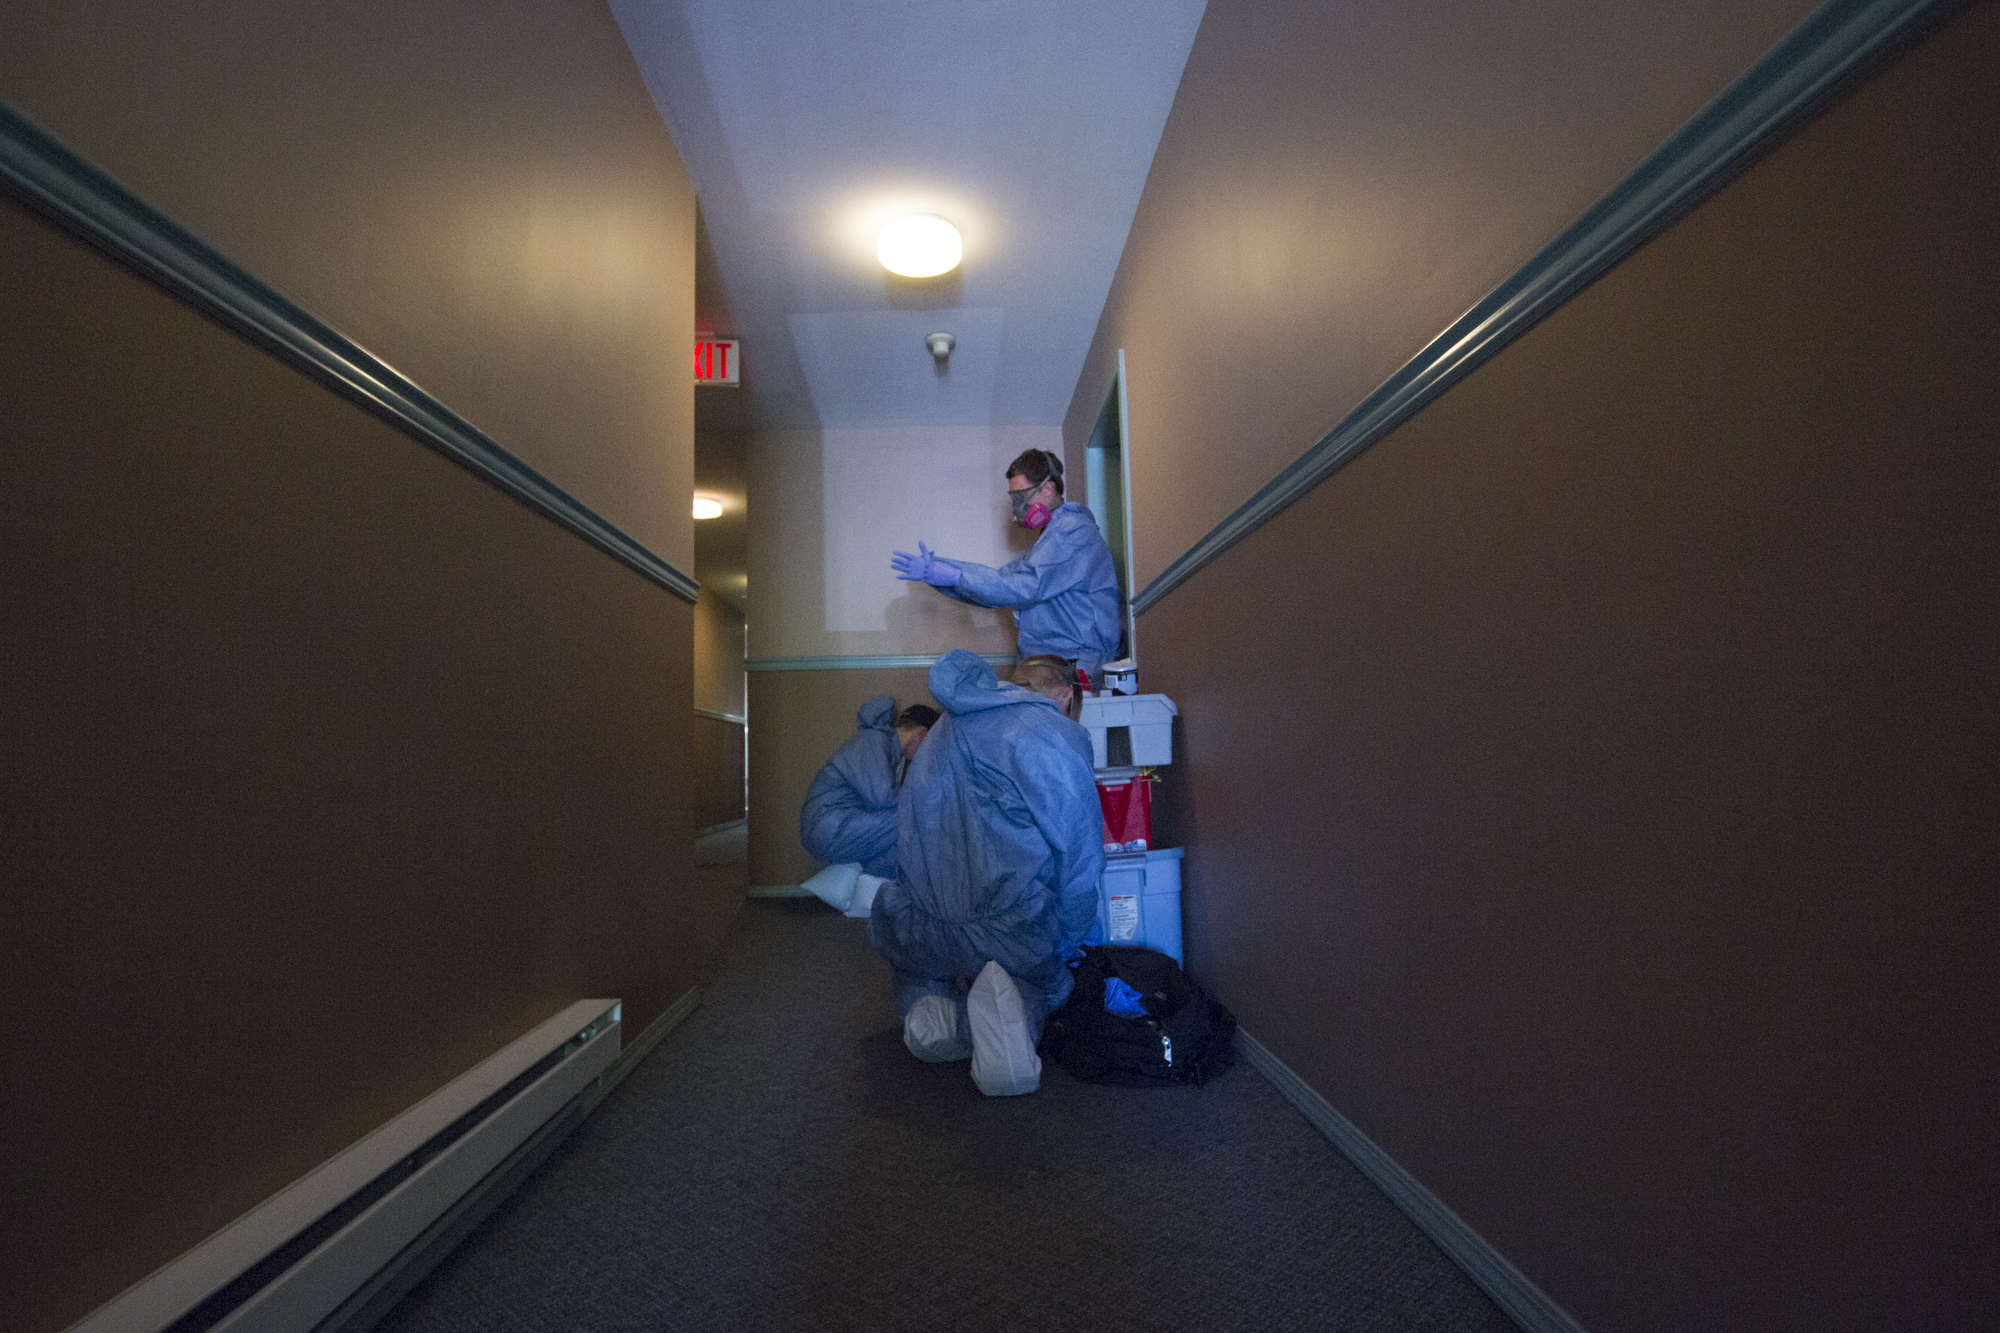 Kreklau and his team get suited up before going into the apartment to avoid cross-contamination. (Tina Lovgreen/CBC)